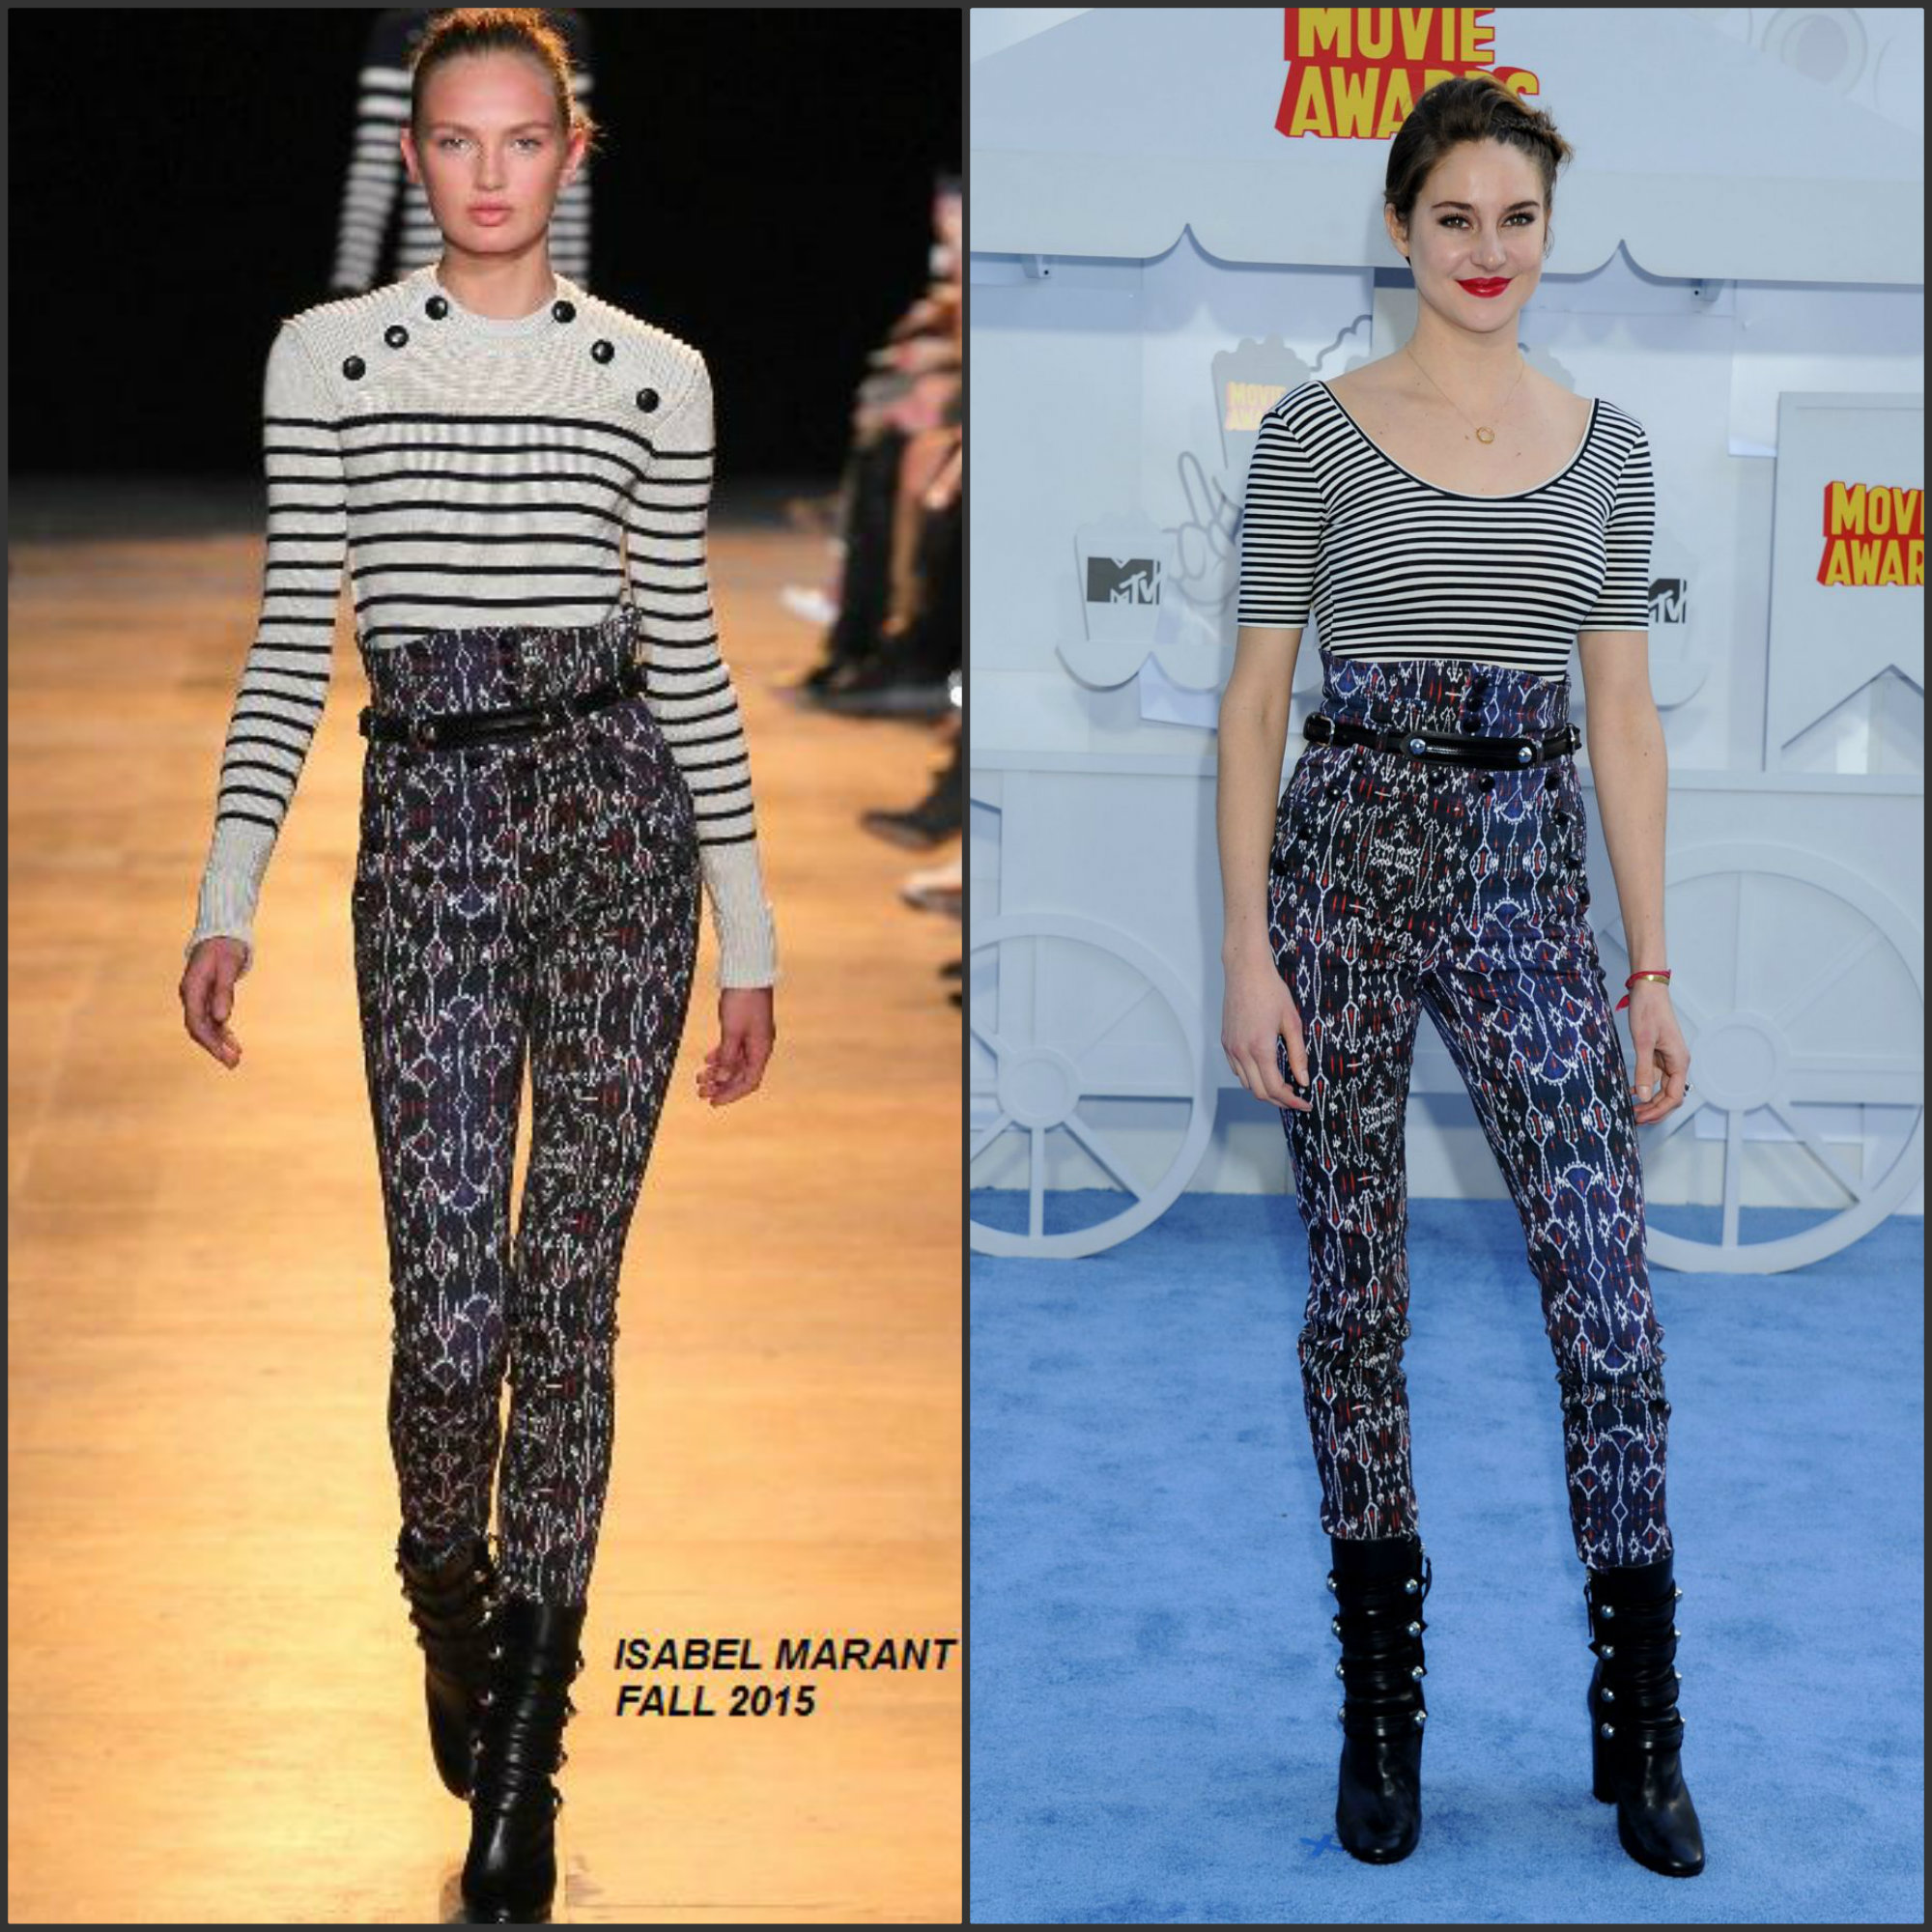 Shailene-Woodley-in Isabel-Marant-at-the-2015-MTV-Movie-Awards